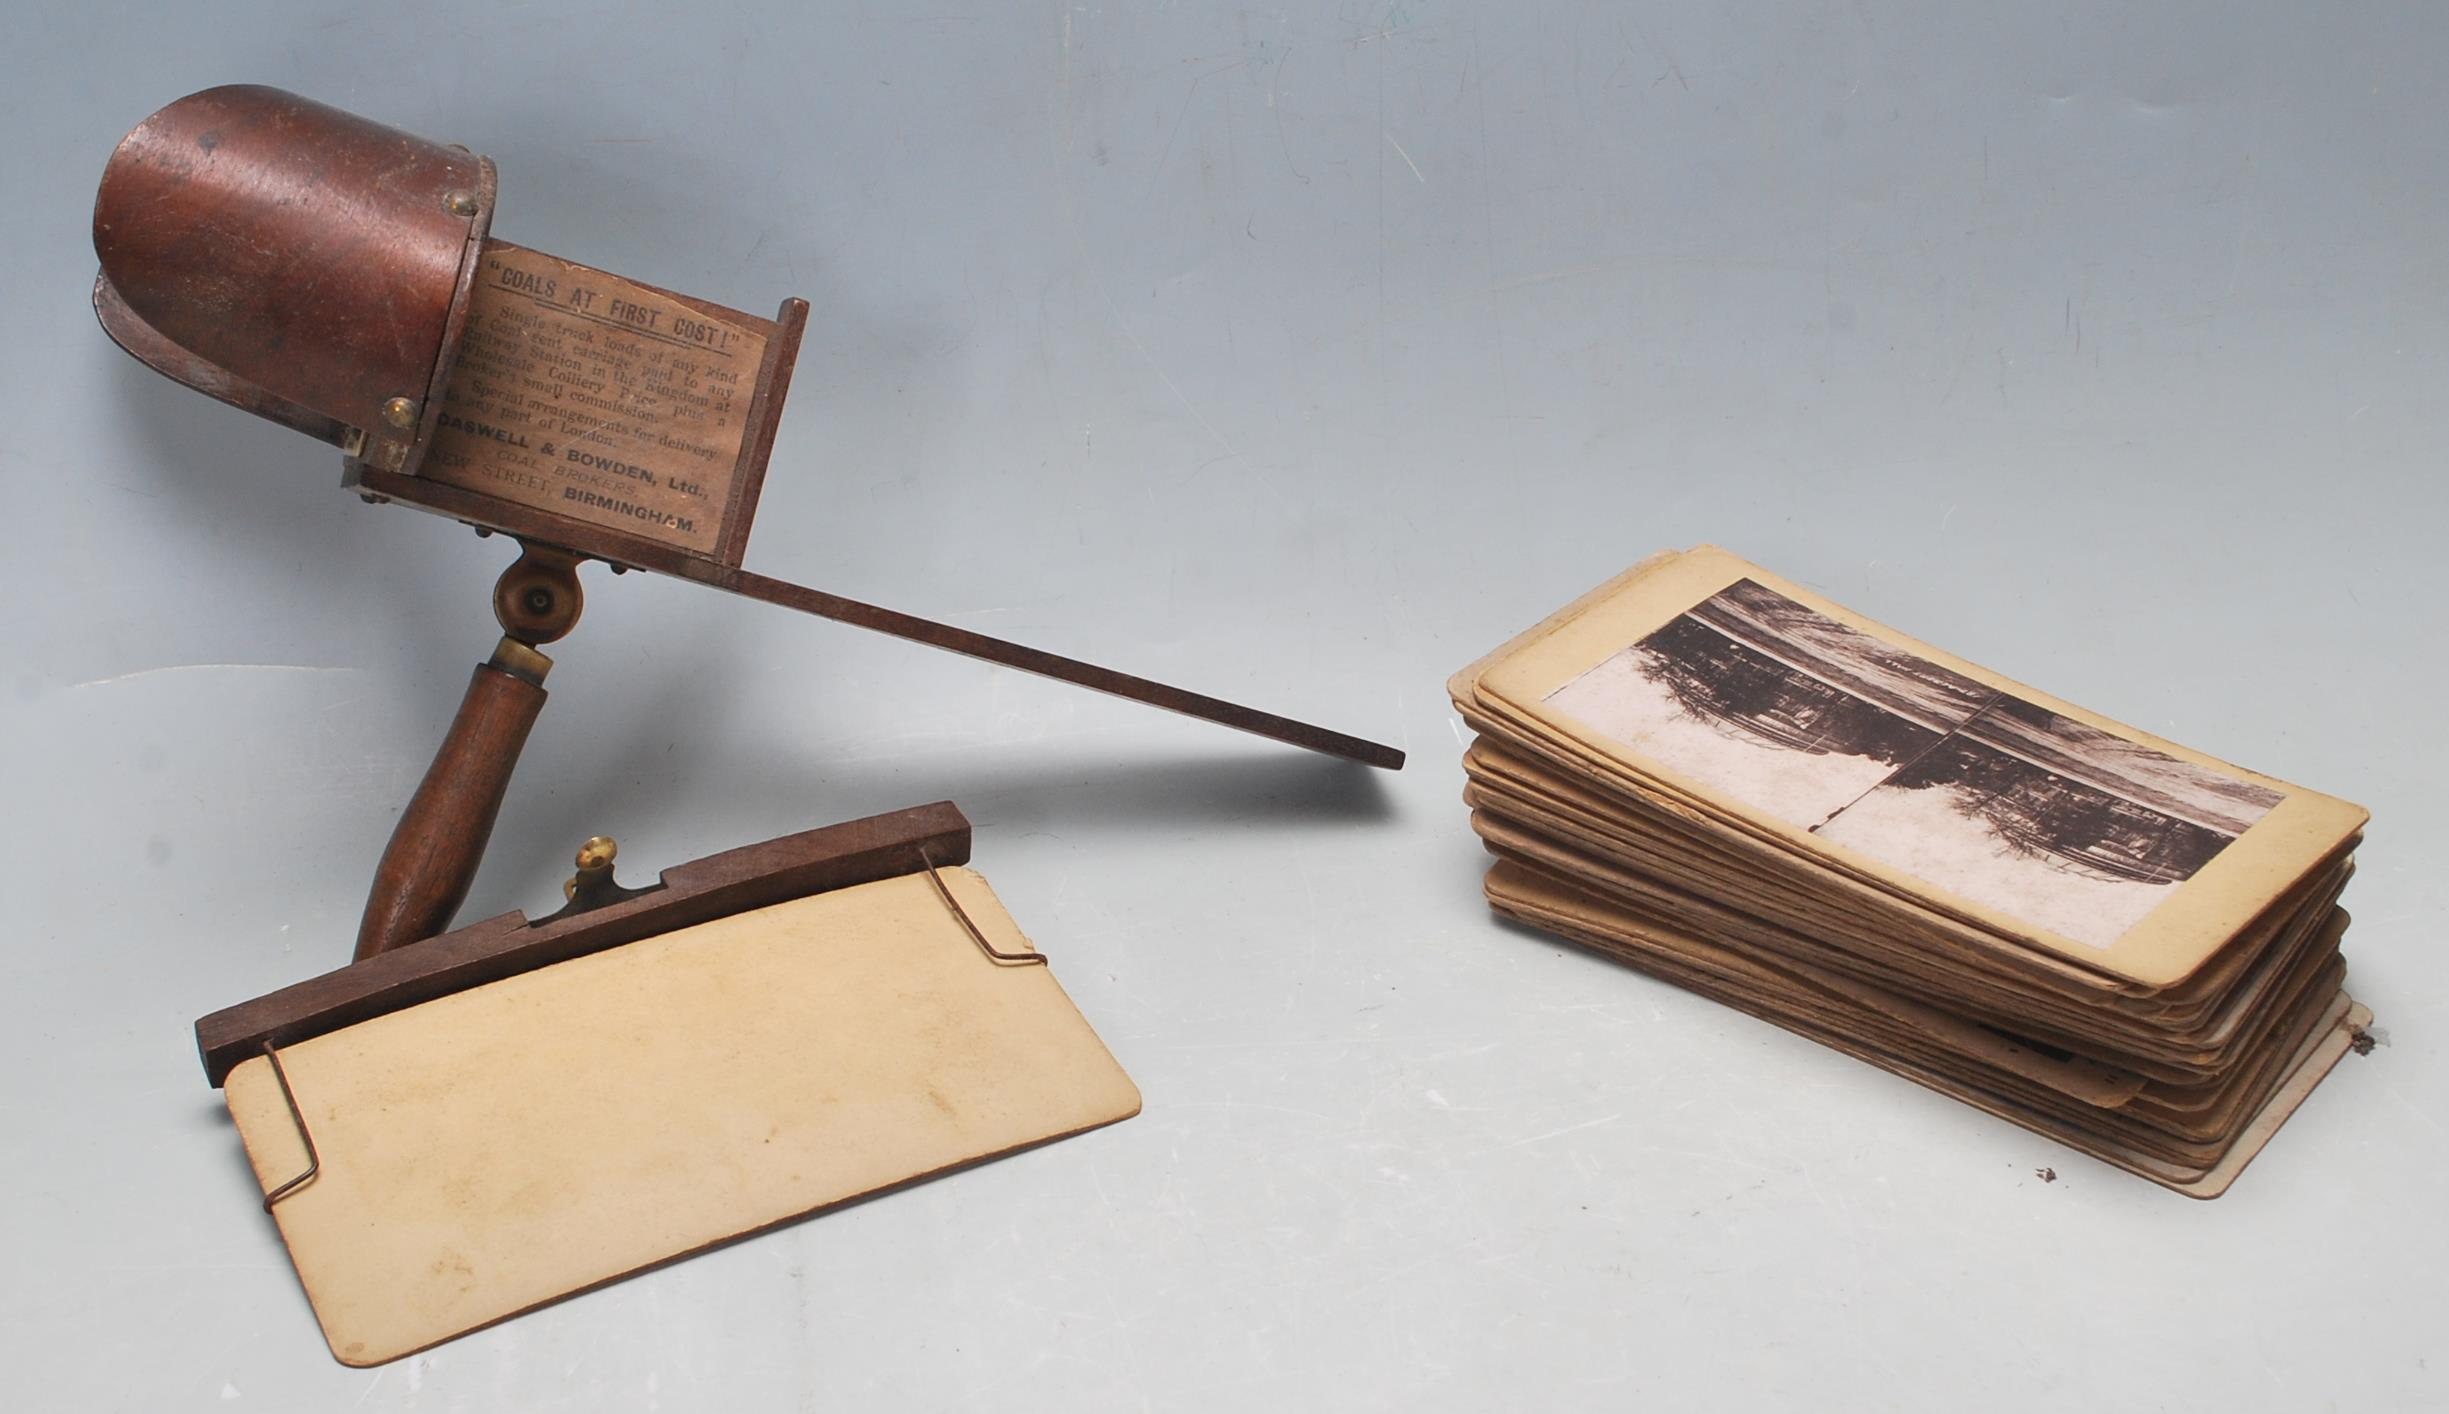 A LATE 19TH CENTURY VICTORIAN STEREOSCOPE VIEWER WITH SLIDES OF LONDON, BIRMINGHAM AND SOUTH AFRICA - Image 5 of 5